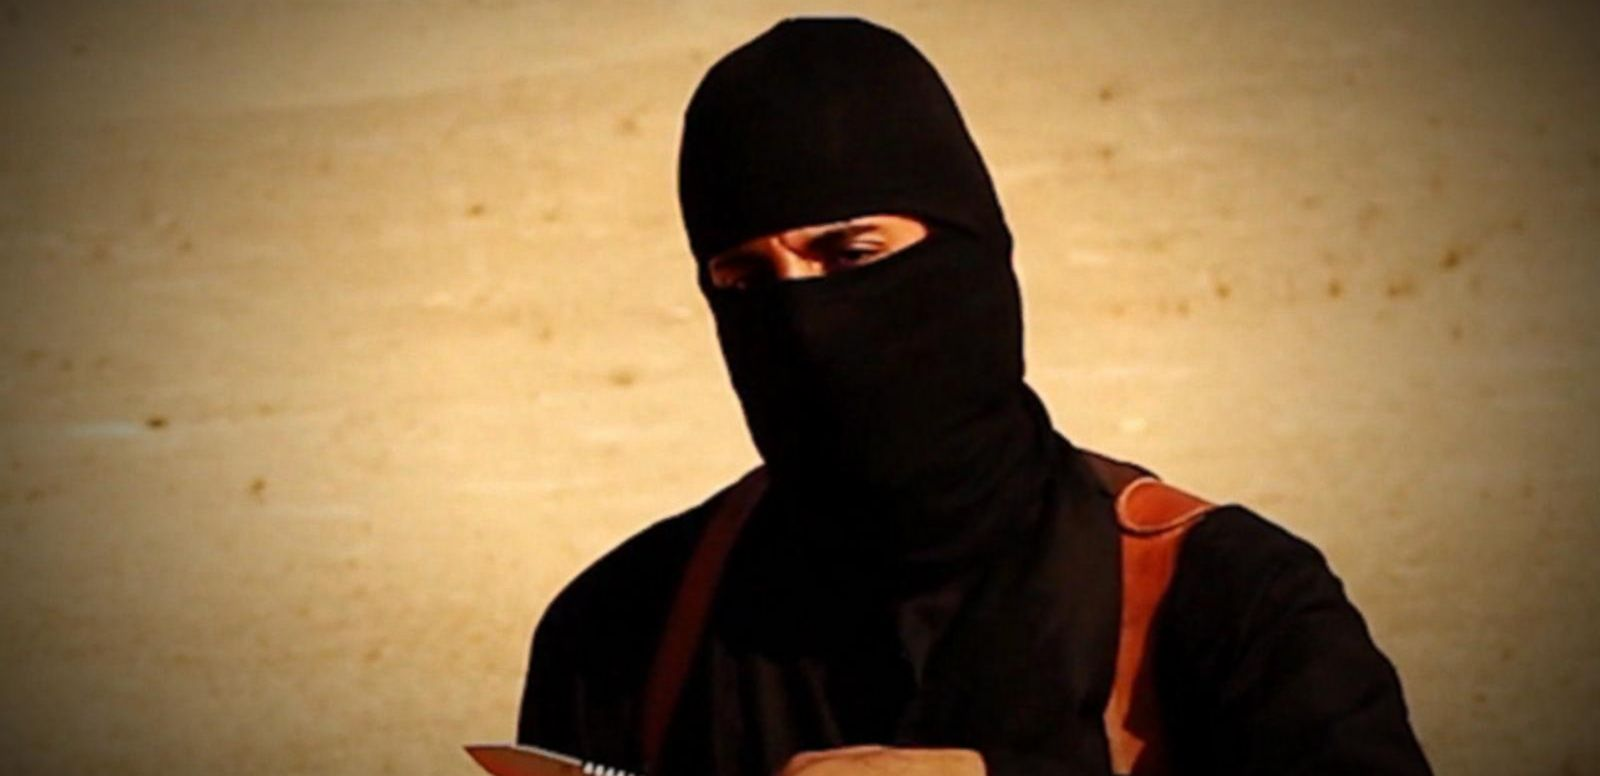 VIDEO: 'Jihadi John' Named: Who's the Man Behind the Mask?